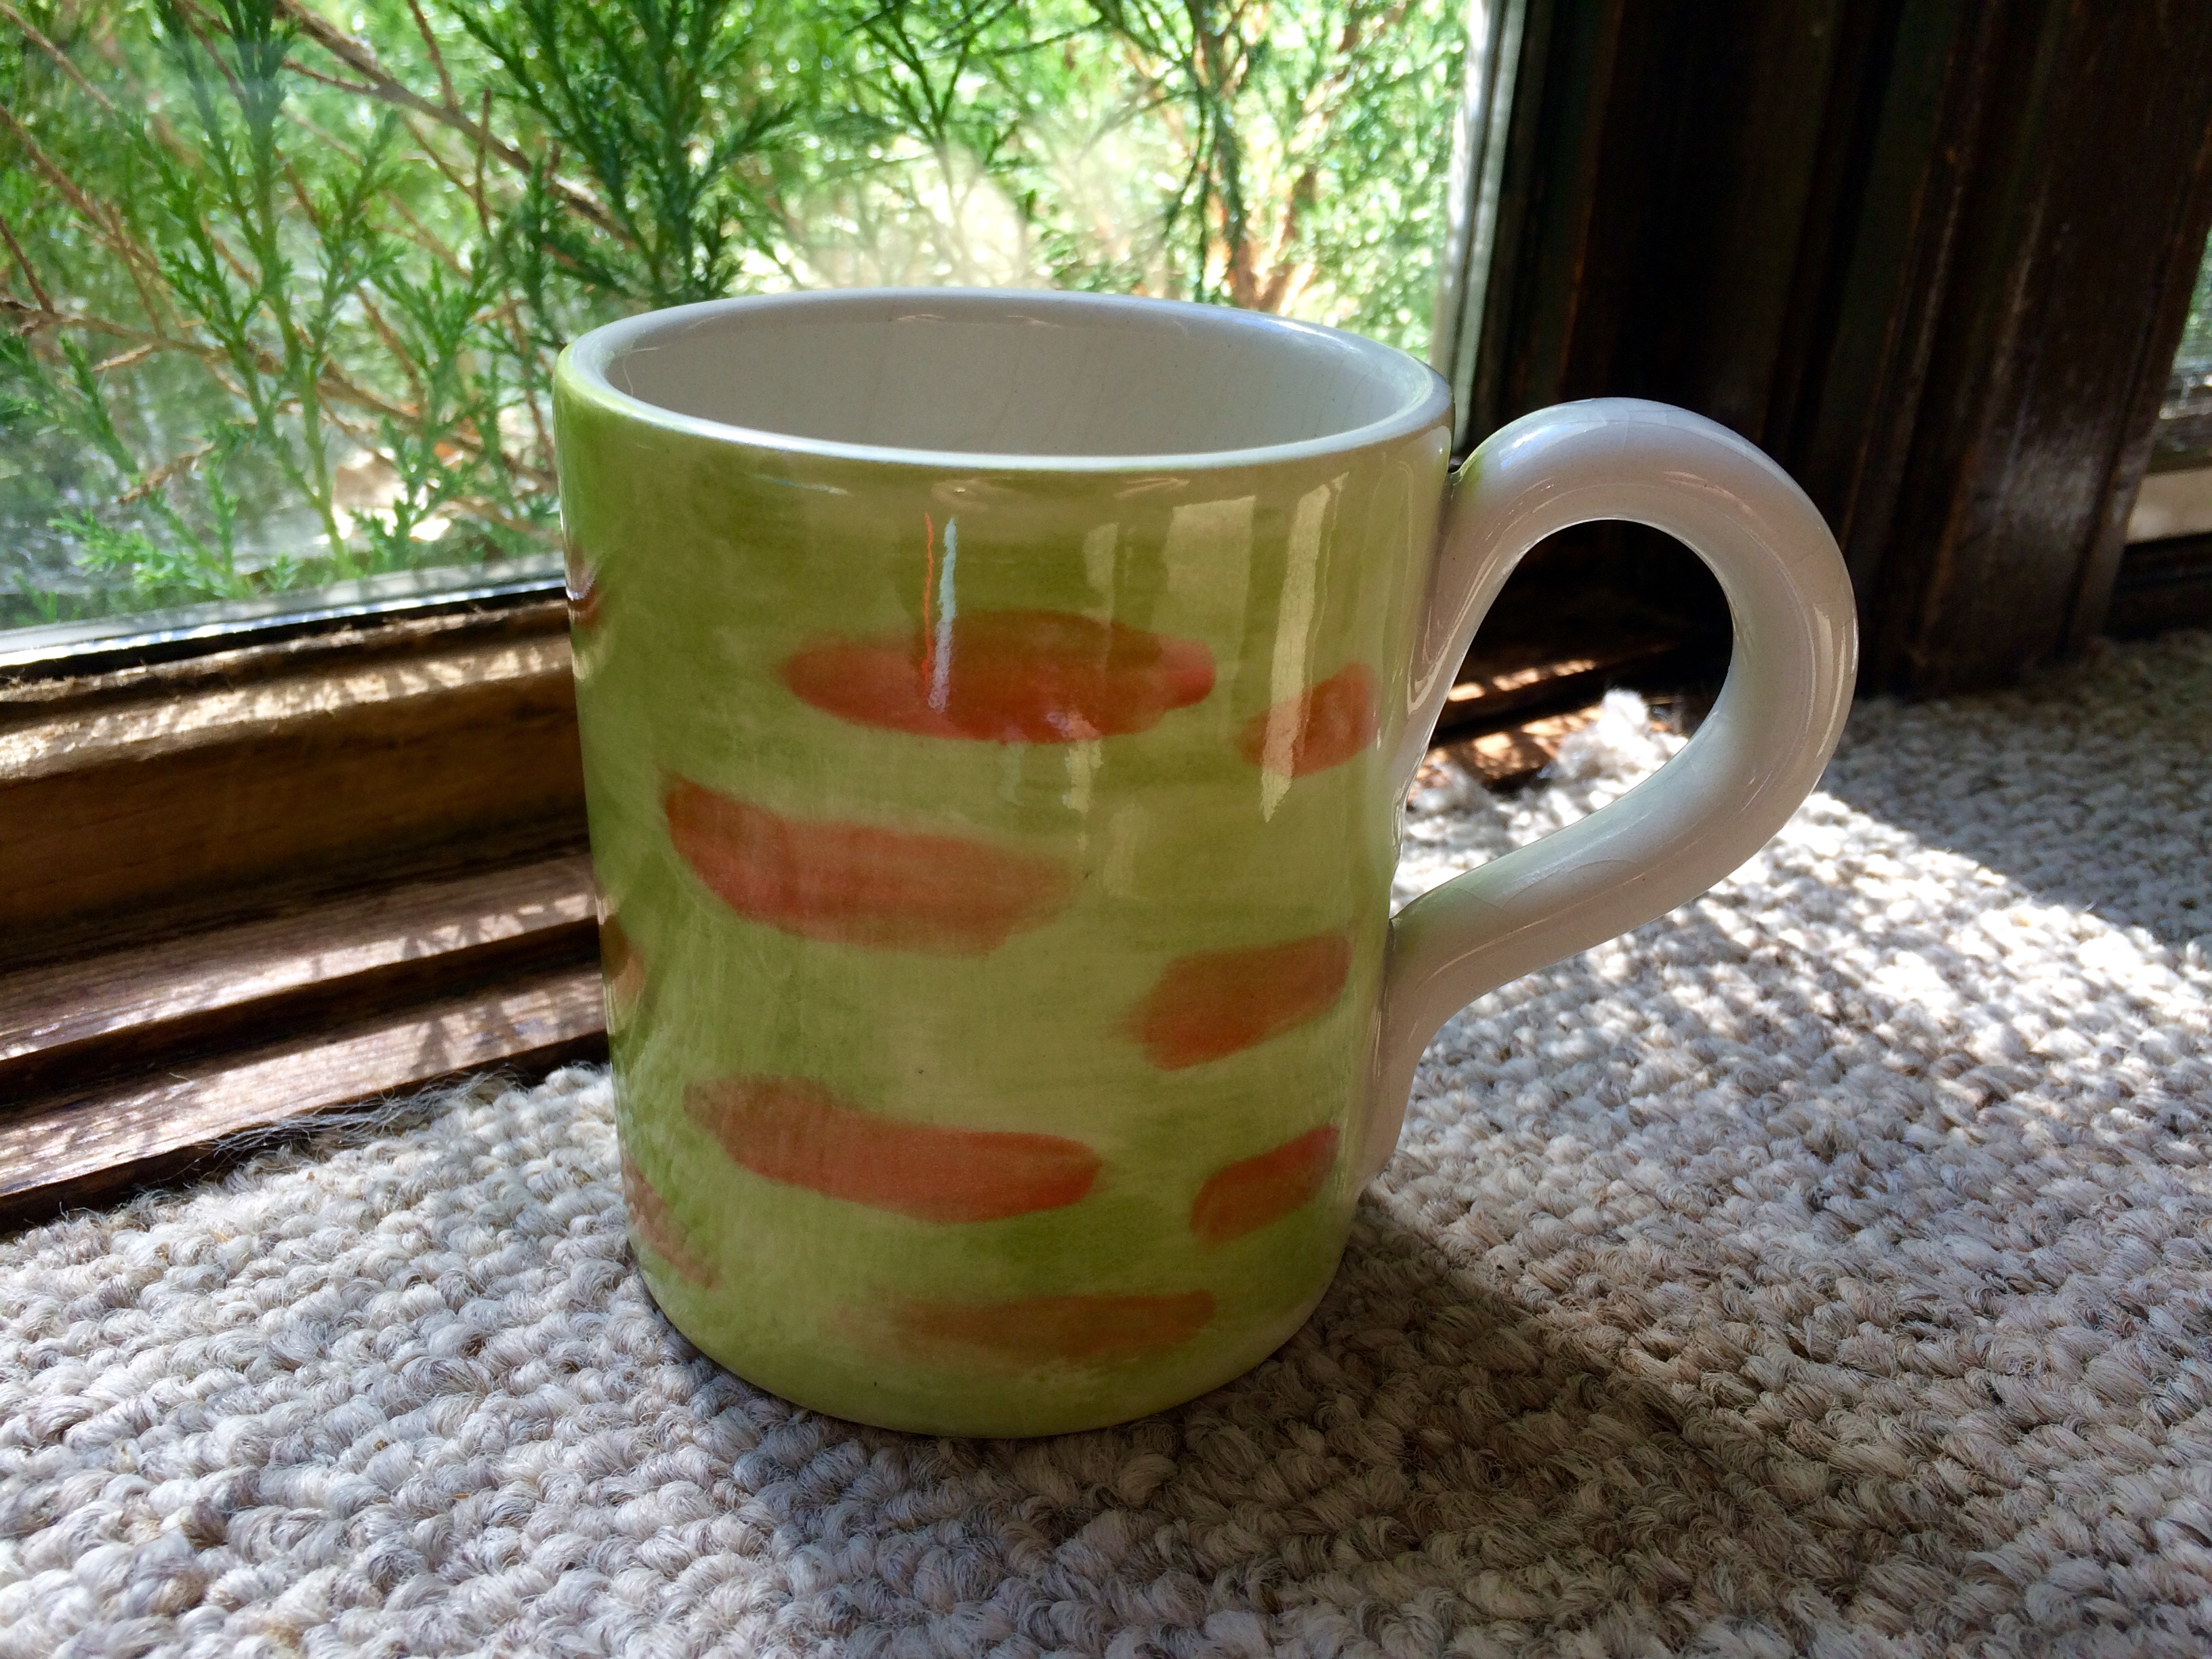 a poorly painted green coffee mug with orange stripes